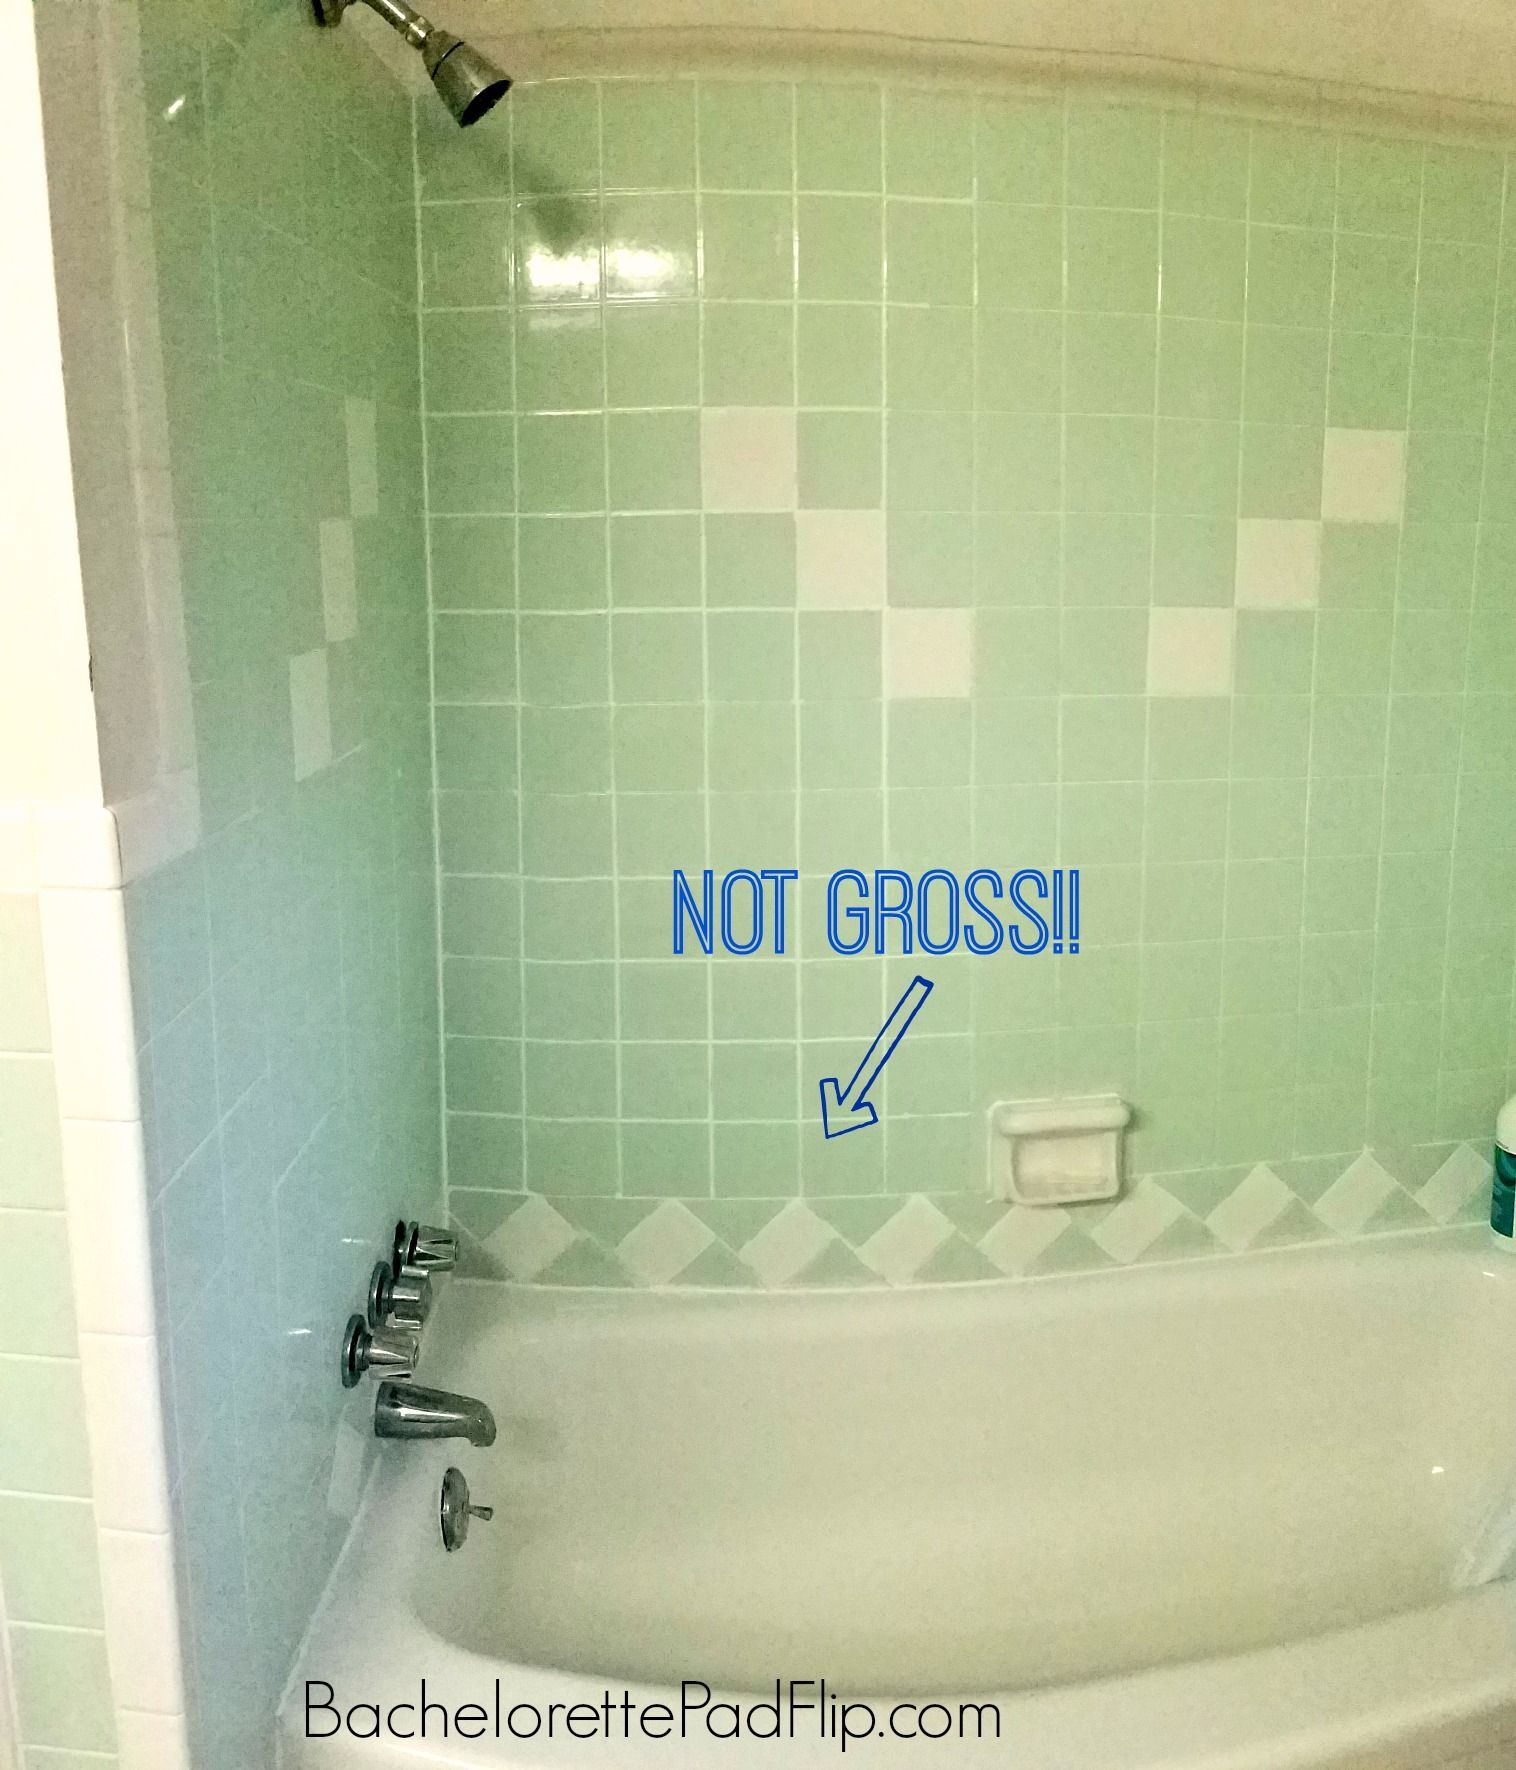 How To Get Rid Of Mold Mildew In A Shower Bachelorette Pad Flip In 2020 Mold In Bathroom Shower Mold Get Rid Of Mold